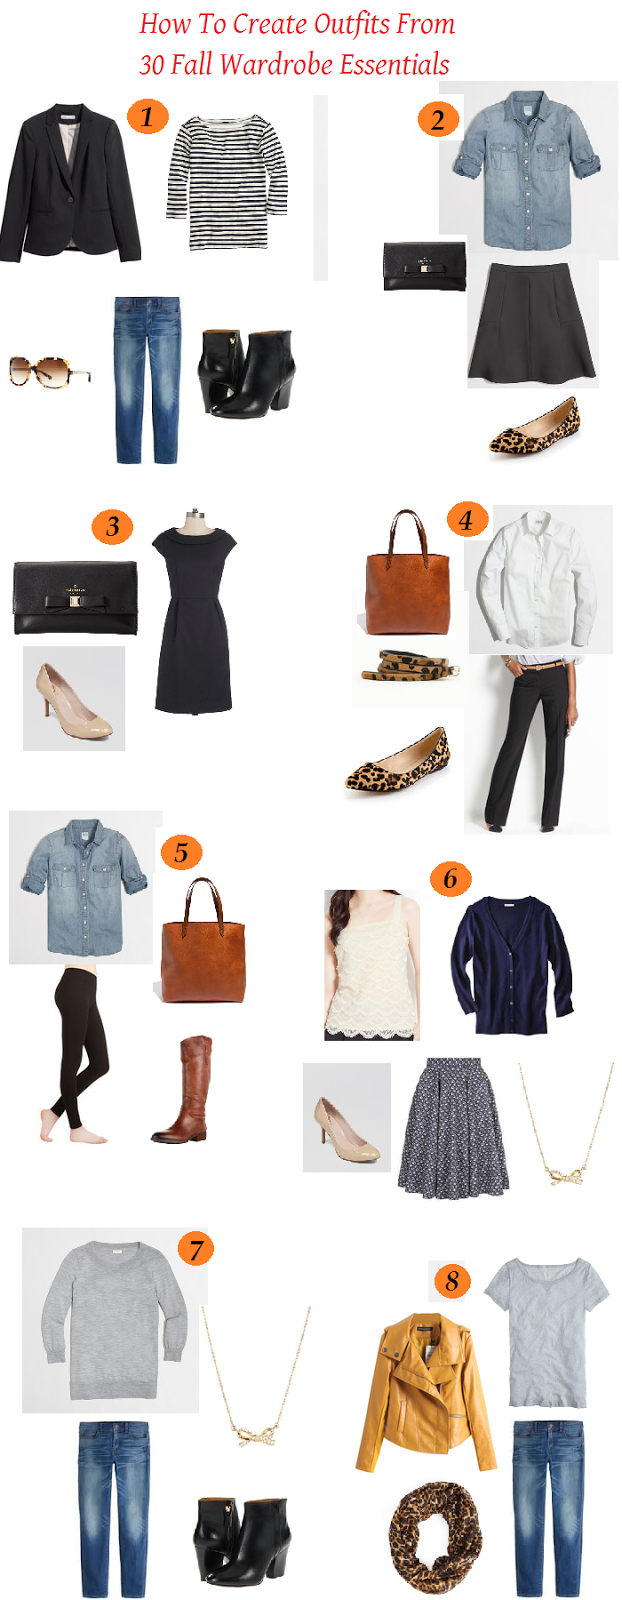 Part 2: How to Create Outfits from 30 Fall Wardrobe Essentials